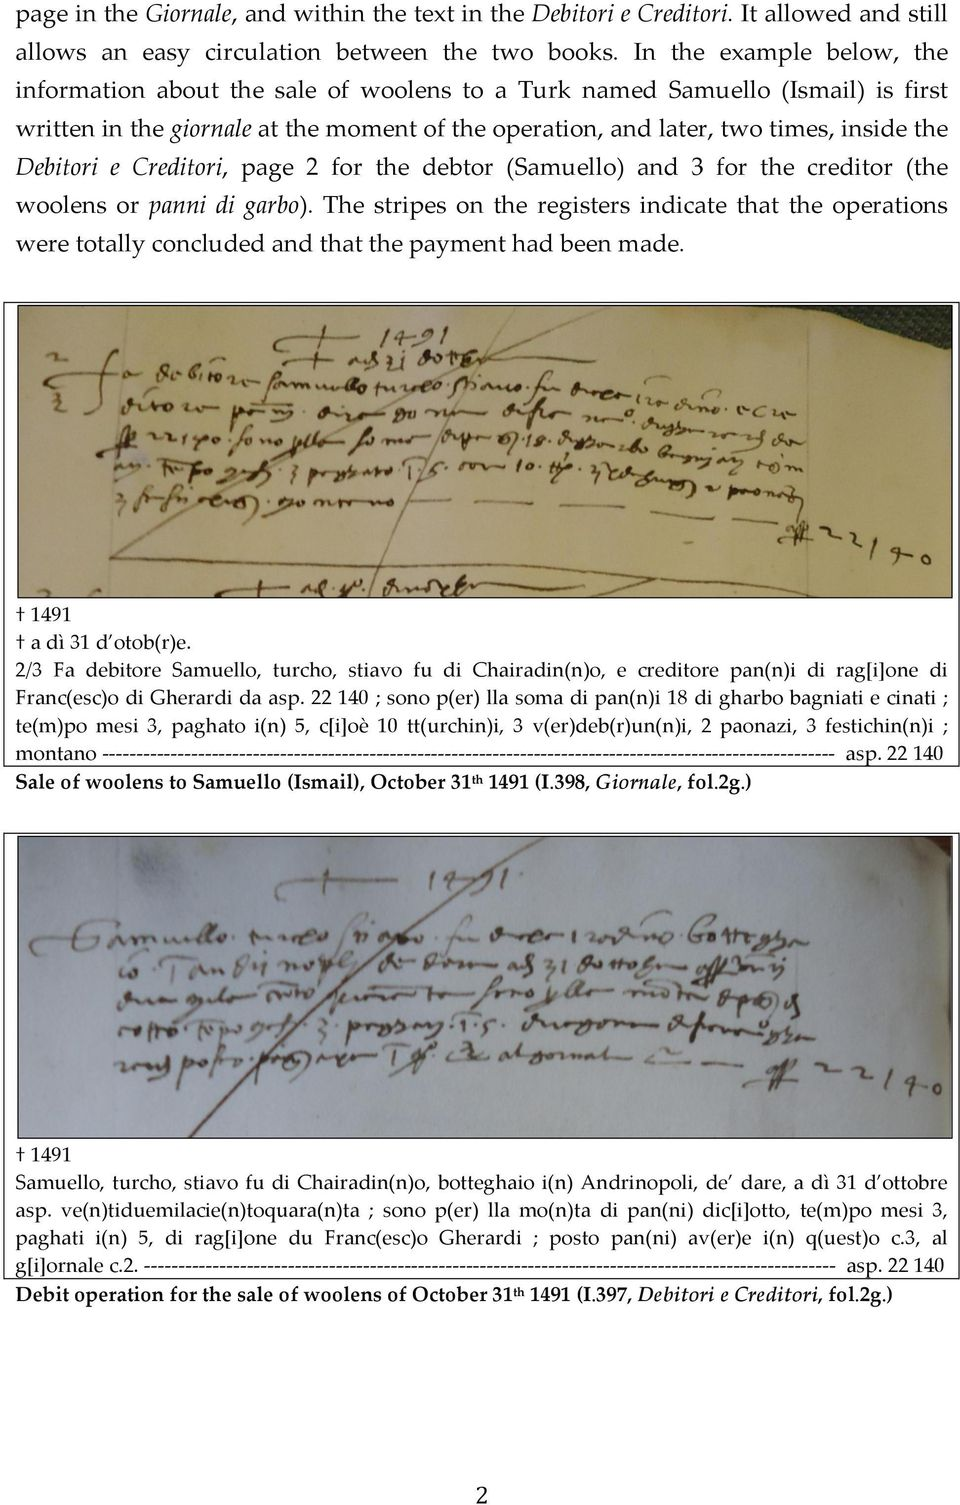 Debitori e Creditori, page 2 for the debtor (Samuello) and 3 for the creditor (the woolens or panni di garbo).